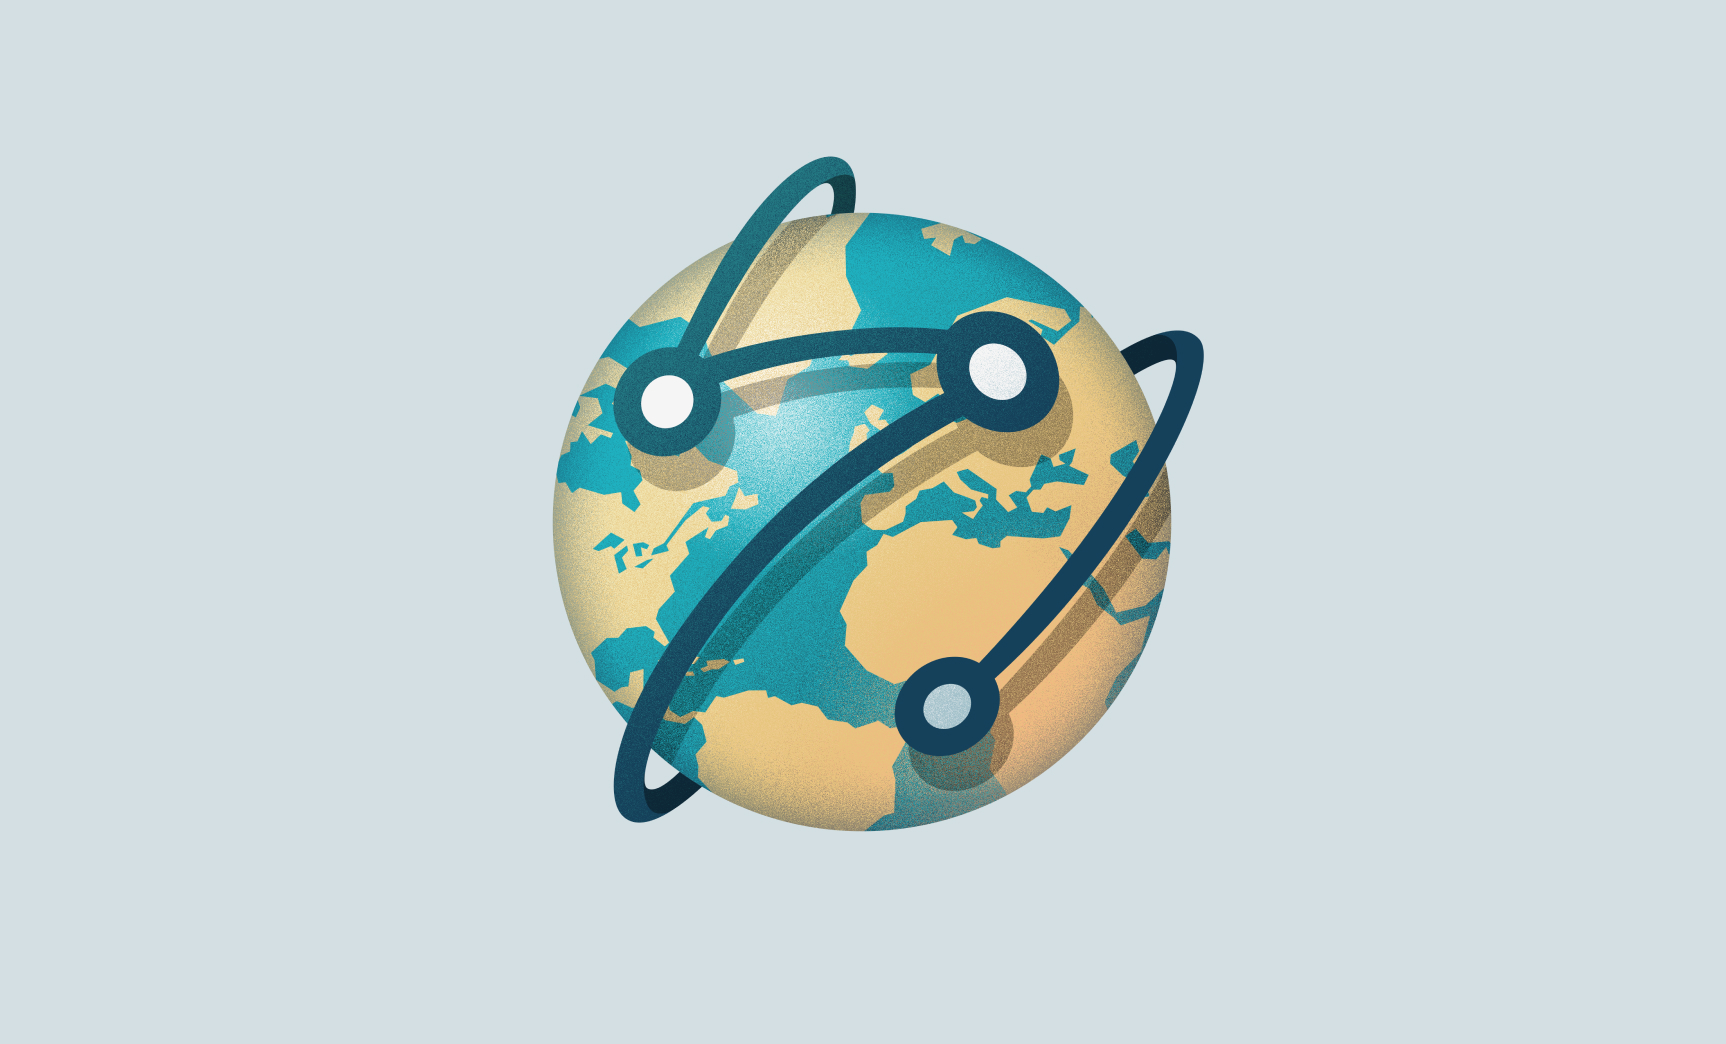 An image of a globe representing the ESHRE conference